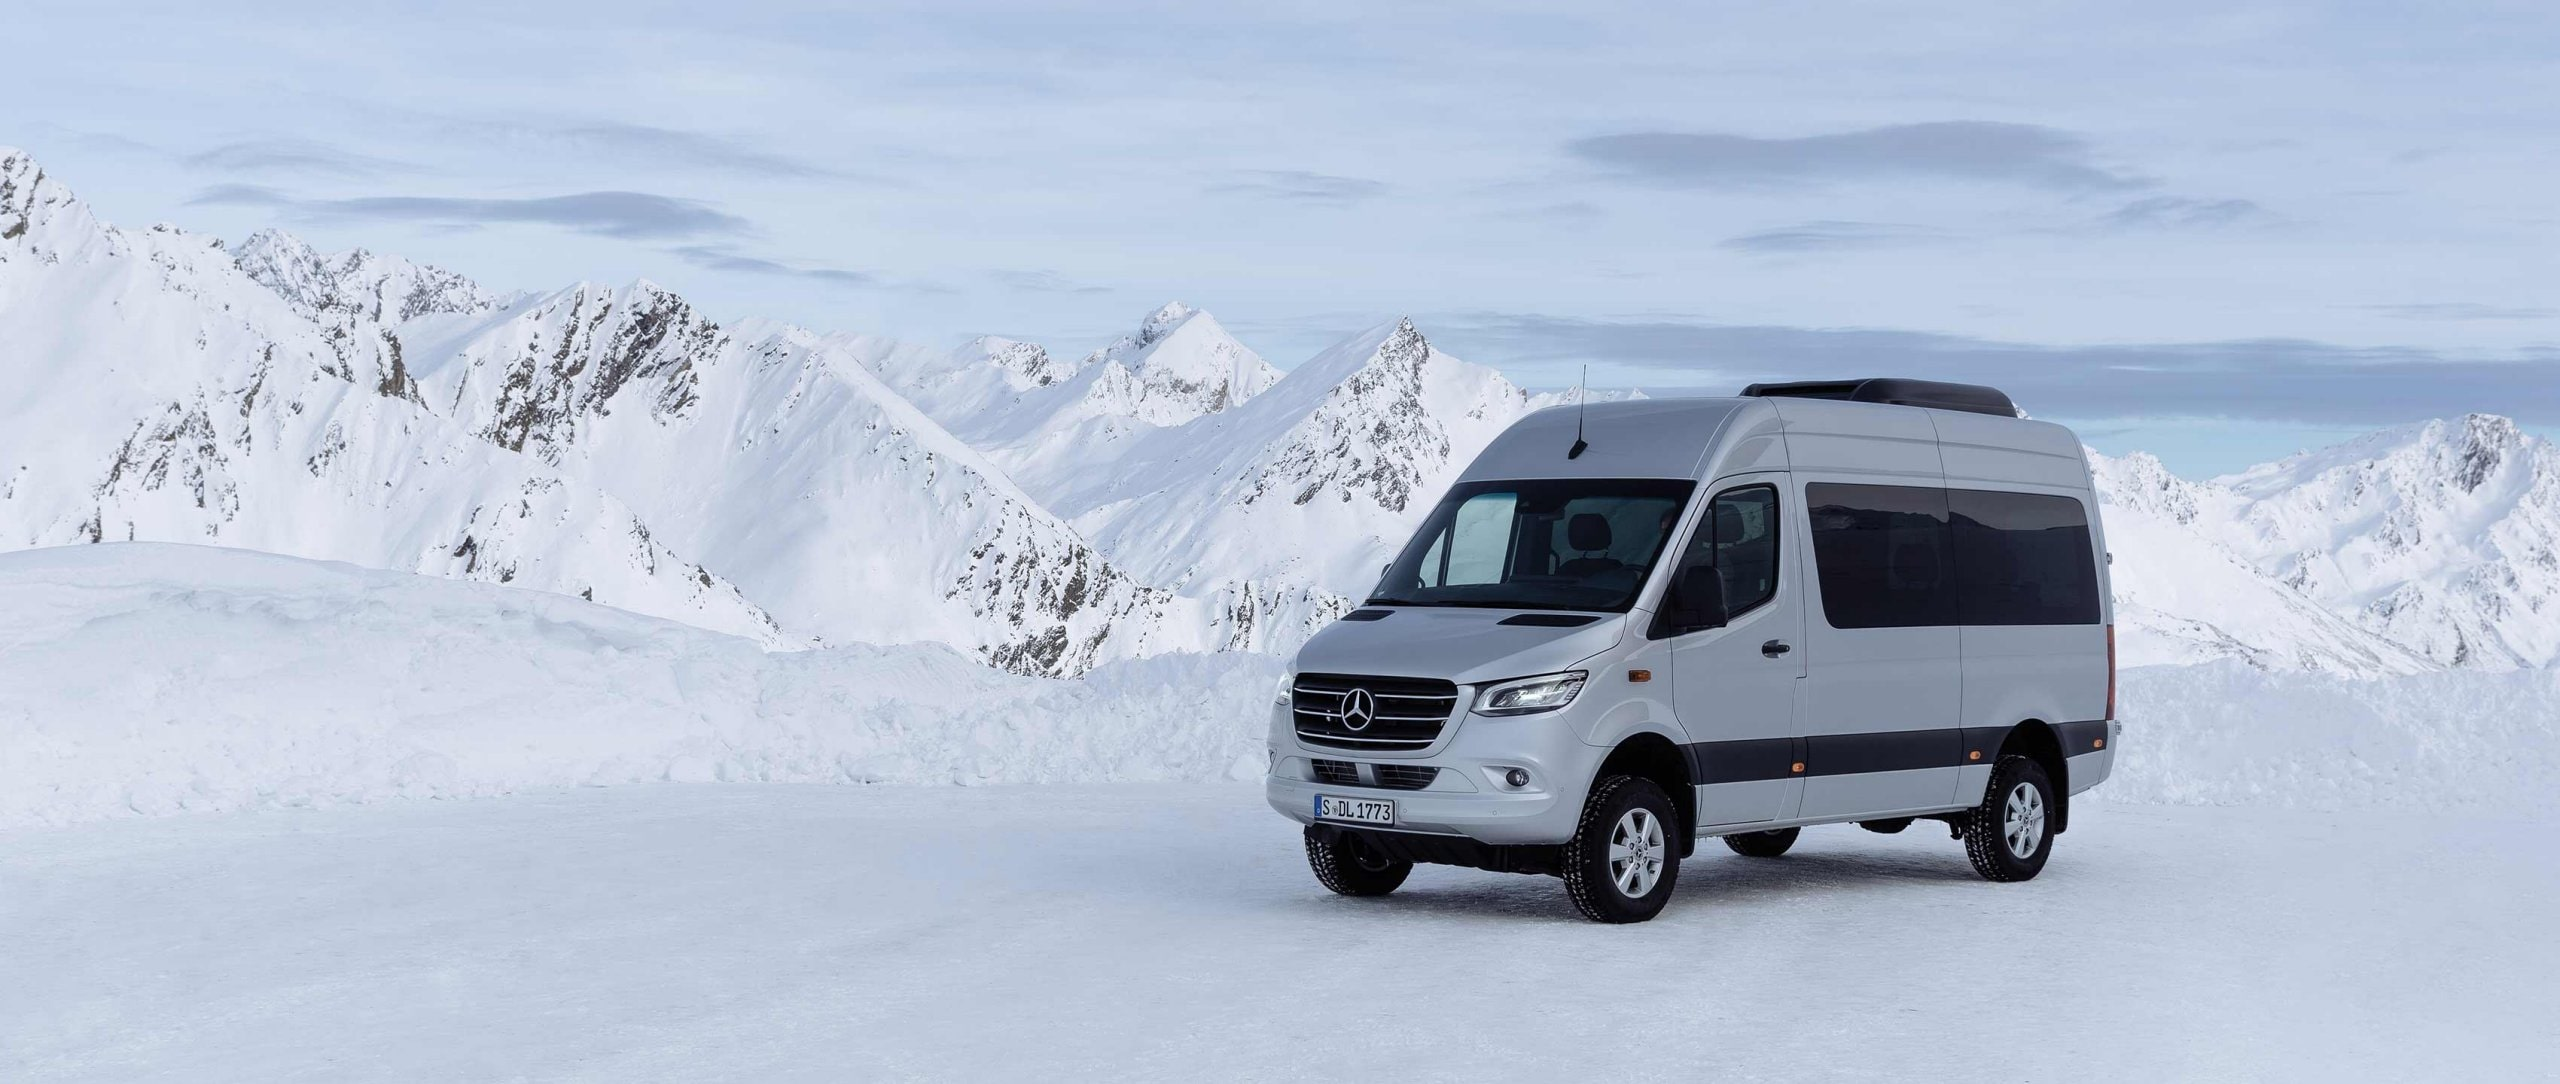 The New Sprinter 4x4 Composure In Rough Terrain